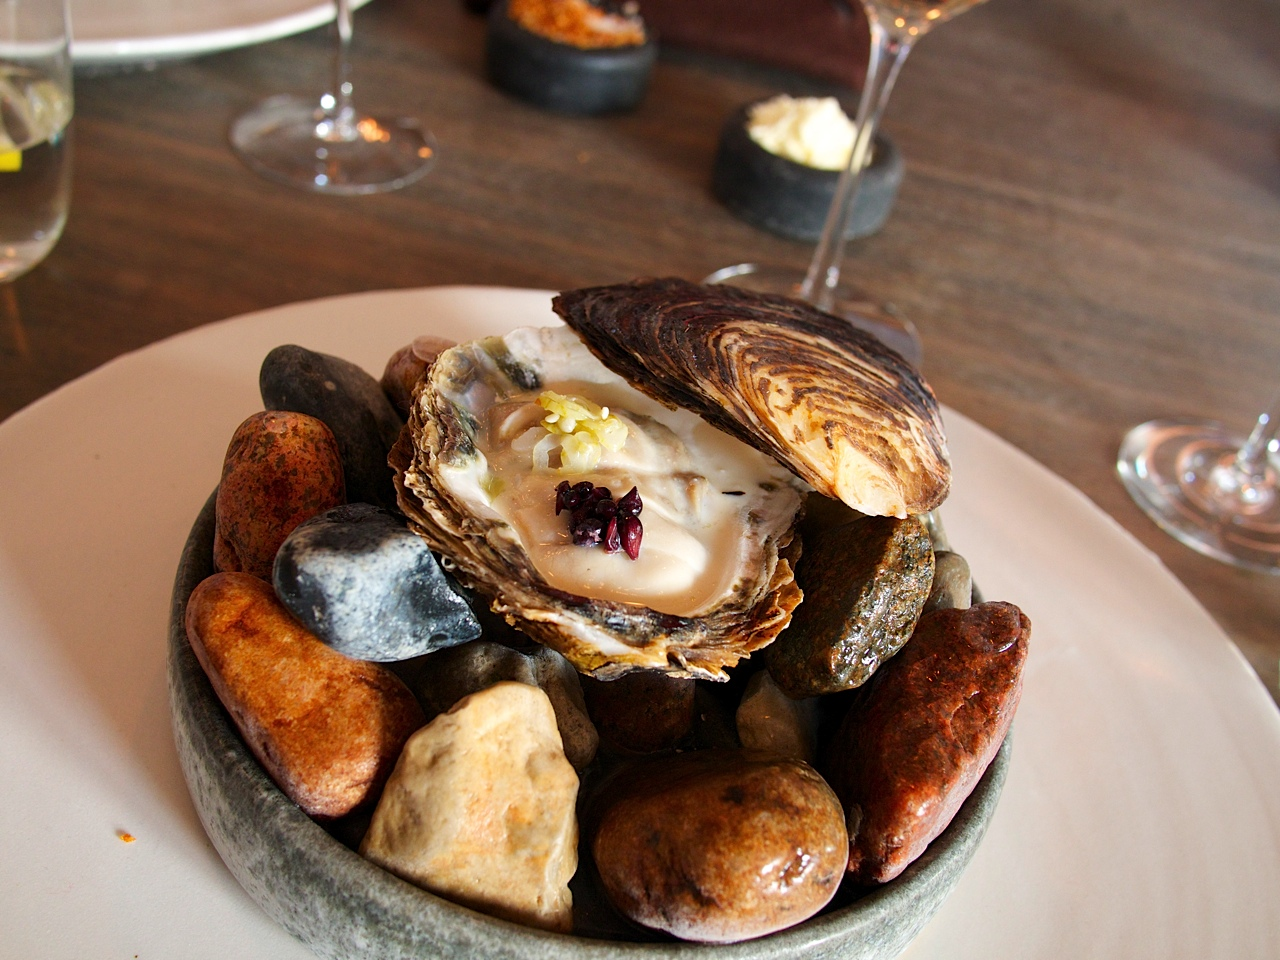 Though not on the radar of most gastronomic restaurants, Limfjorden oysters are considered among the best in the world. In North Jutland, Limfjorden remains the wild oyster bed of the endangered original European oyster. The waters they live in are practically the northern border of the European oyster's natural habitat. It's simply too cold for the oysters to spawn, and the population depletes in the coldest of winter. Poached very lightly for a few seconds with buttermilk and topped with chopped gooseberries, it creates a feeling of the ocean bed melting on the palate.